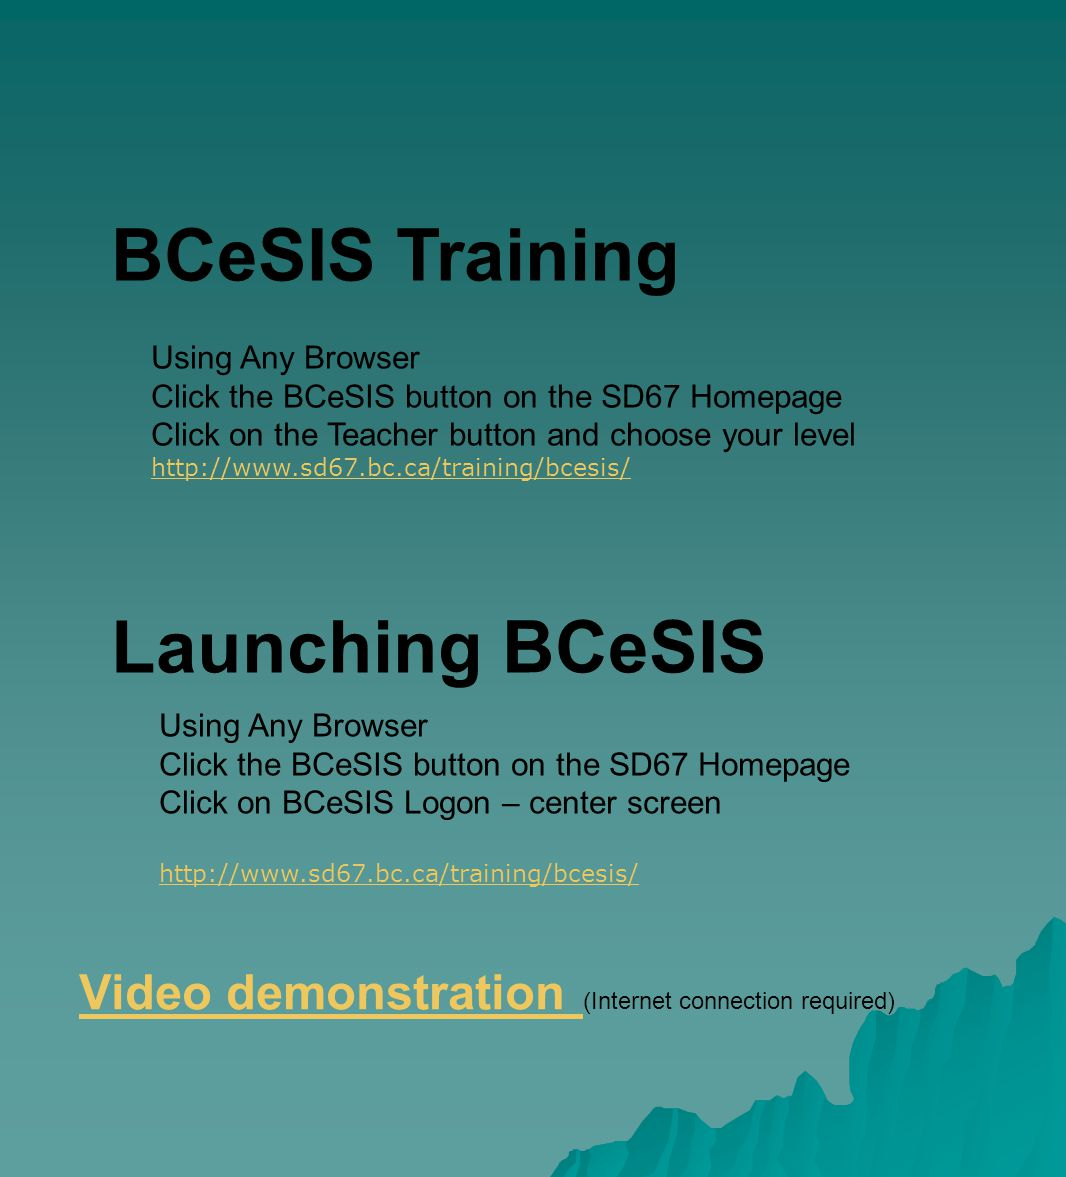 Launching BCeSIS Video demonstration (Internet connection required) Using Any Browser Click the BCeSIS button on the SD67 Homepage Click on the Teacher button and choose your level http://www.sd67.bc.ca/training/bcesis/ BCeSIS Training Using Any Browser Click the BCeSIS button on the SD67 Homepage Click on BCeSIS Logon – center screen http://www.sd67.bc.ca/training/bcesis/